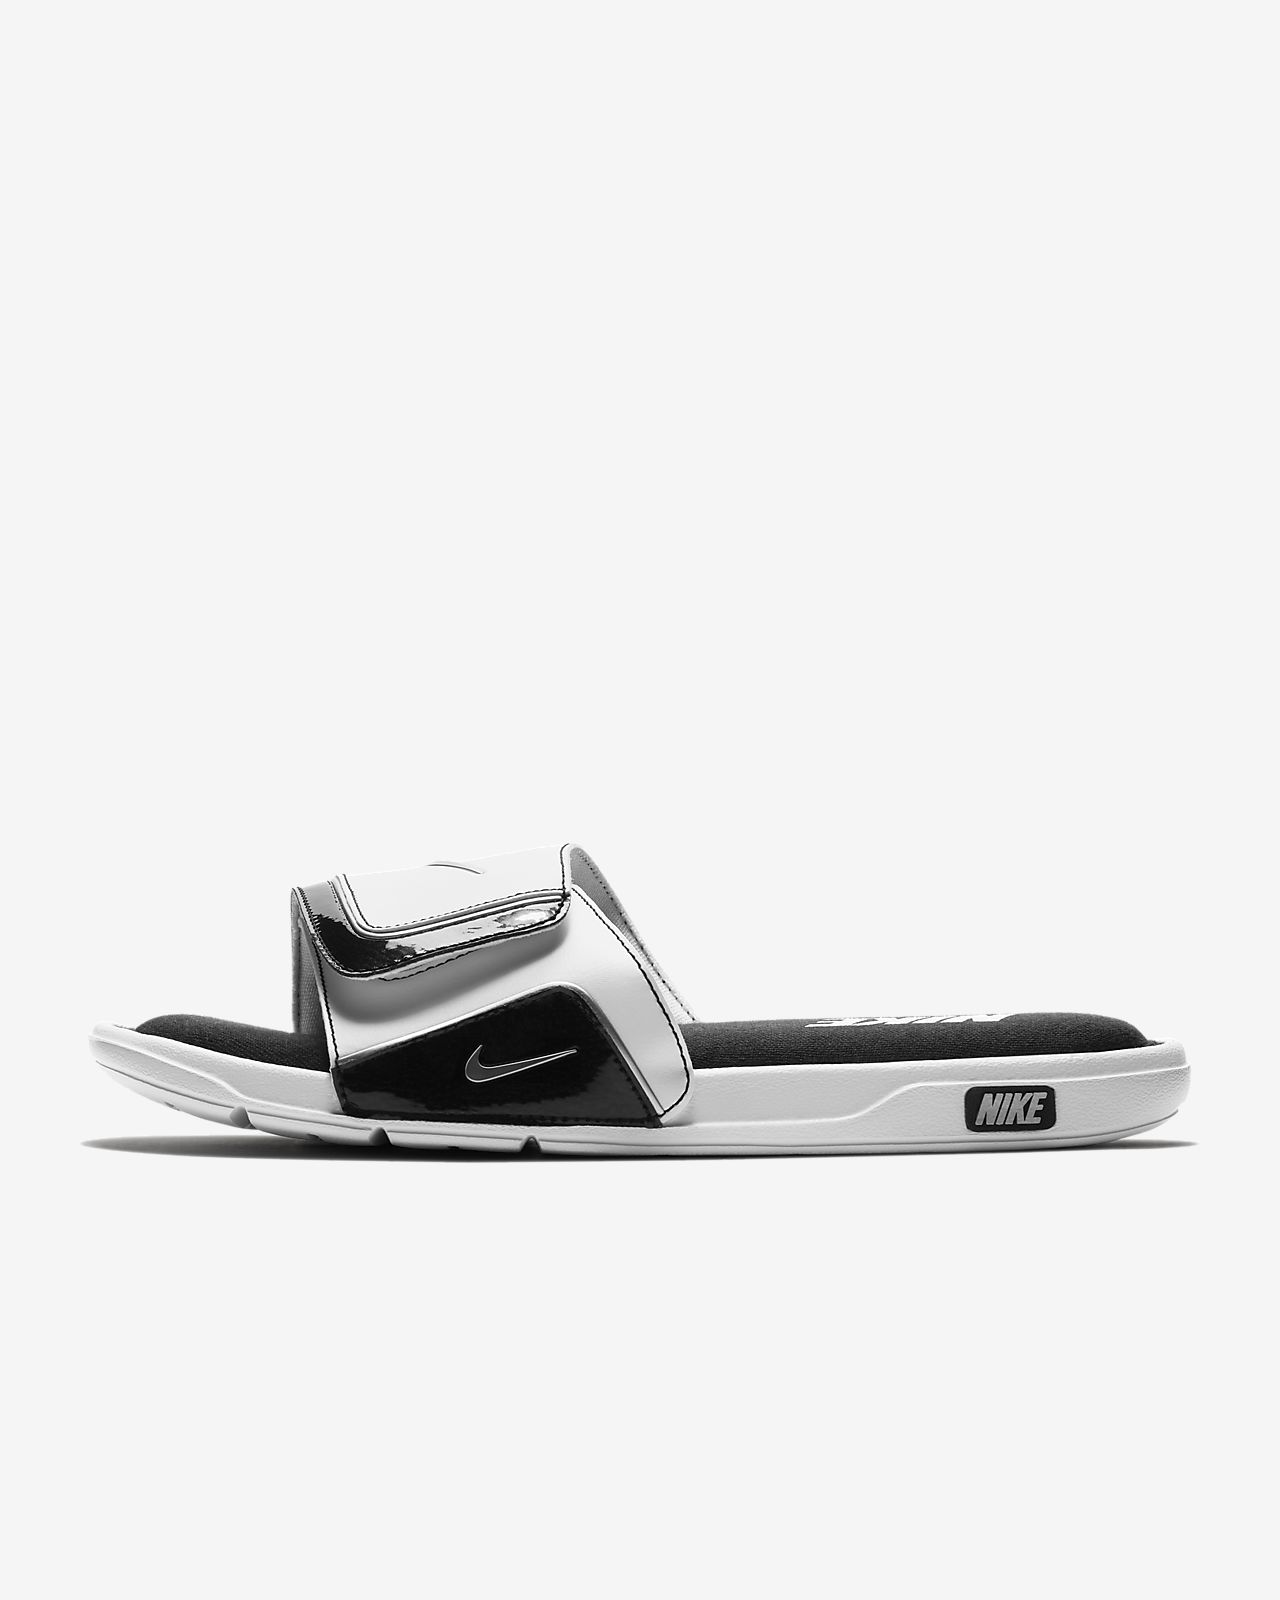 autumnwinter shoes nike shop slide p metallic outlet men winter sandal silver silverwhite black comfort white us autumn comforter blackmetallic c